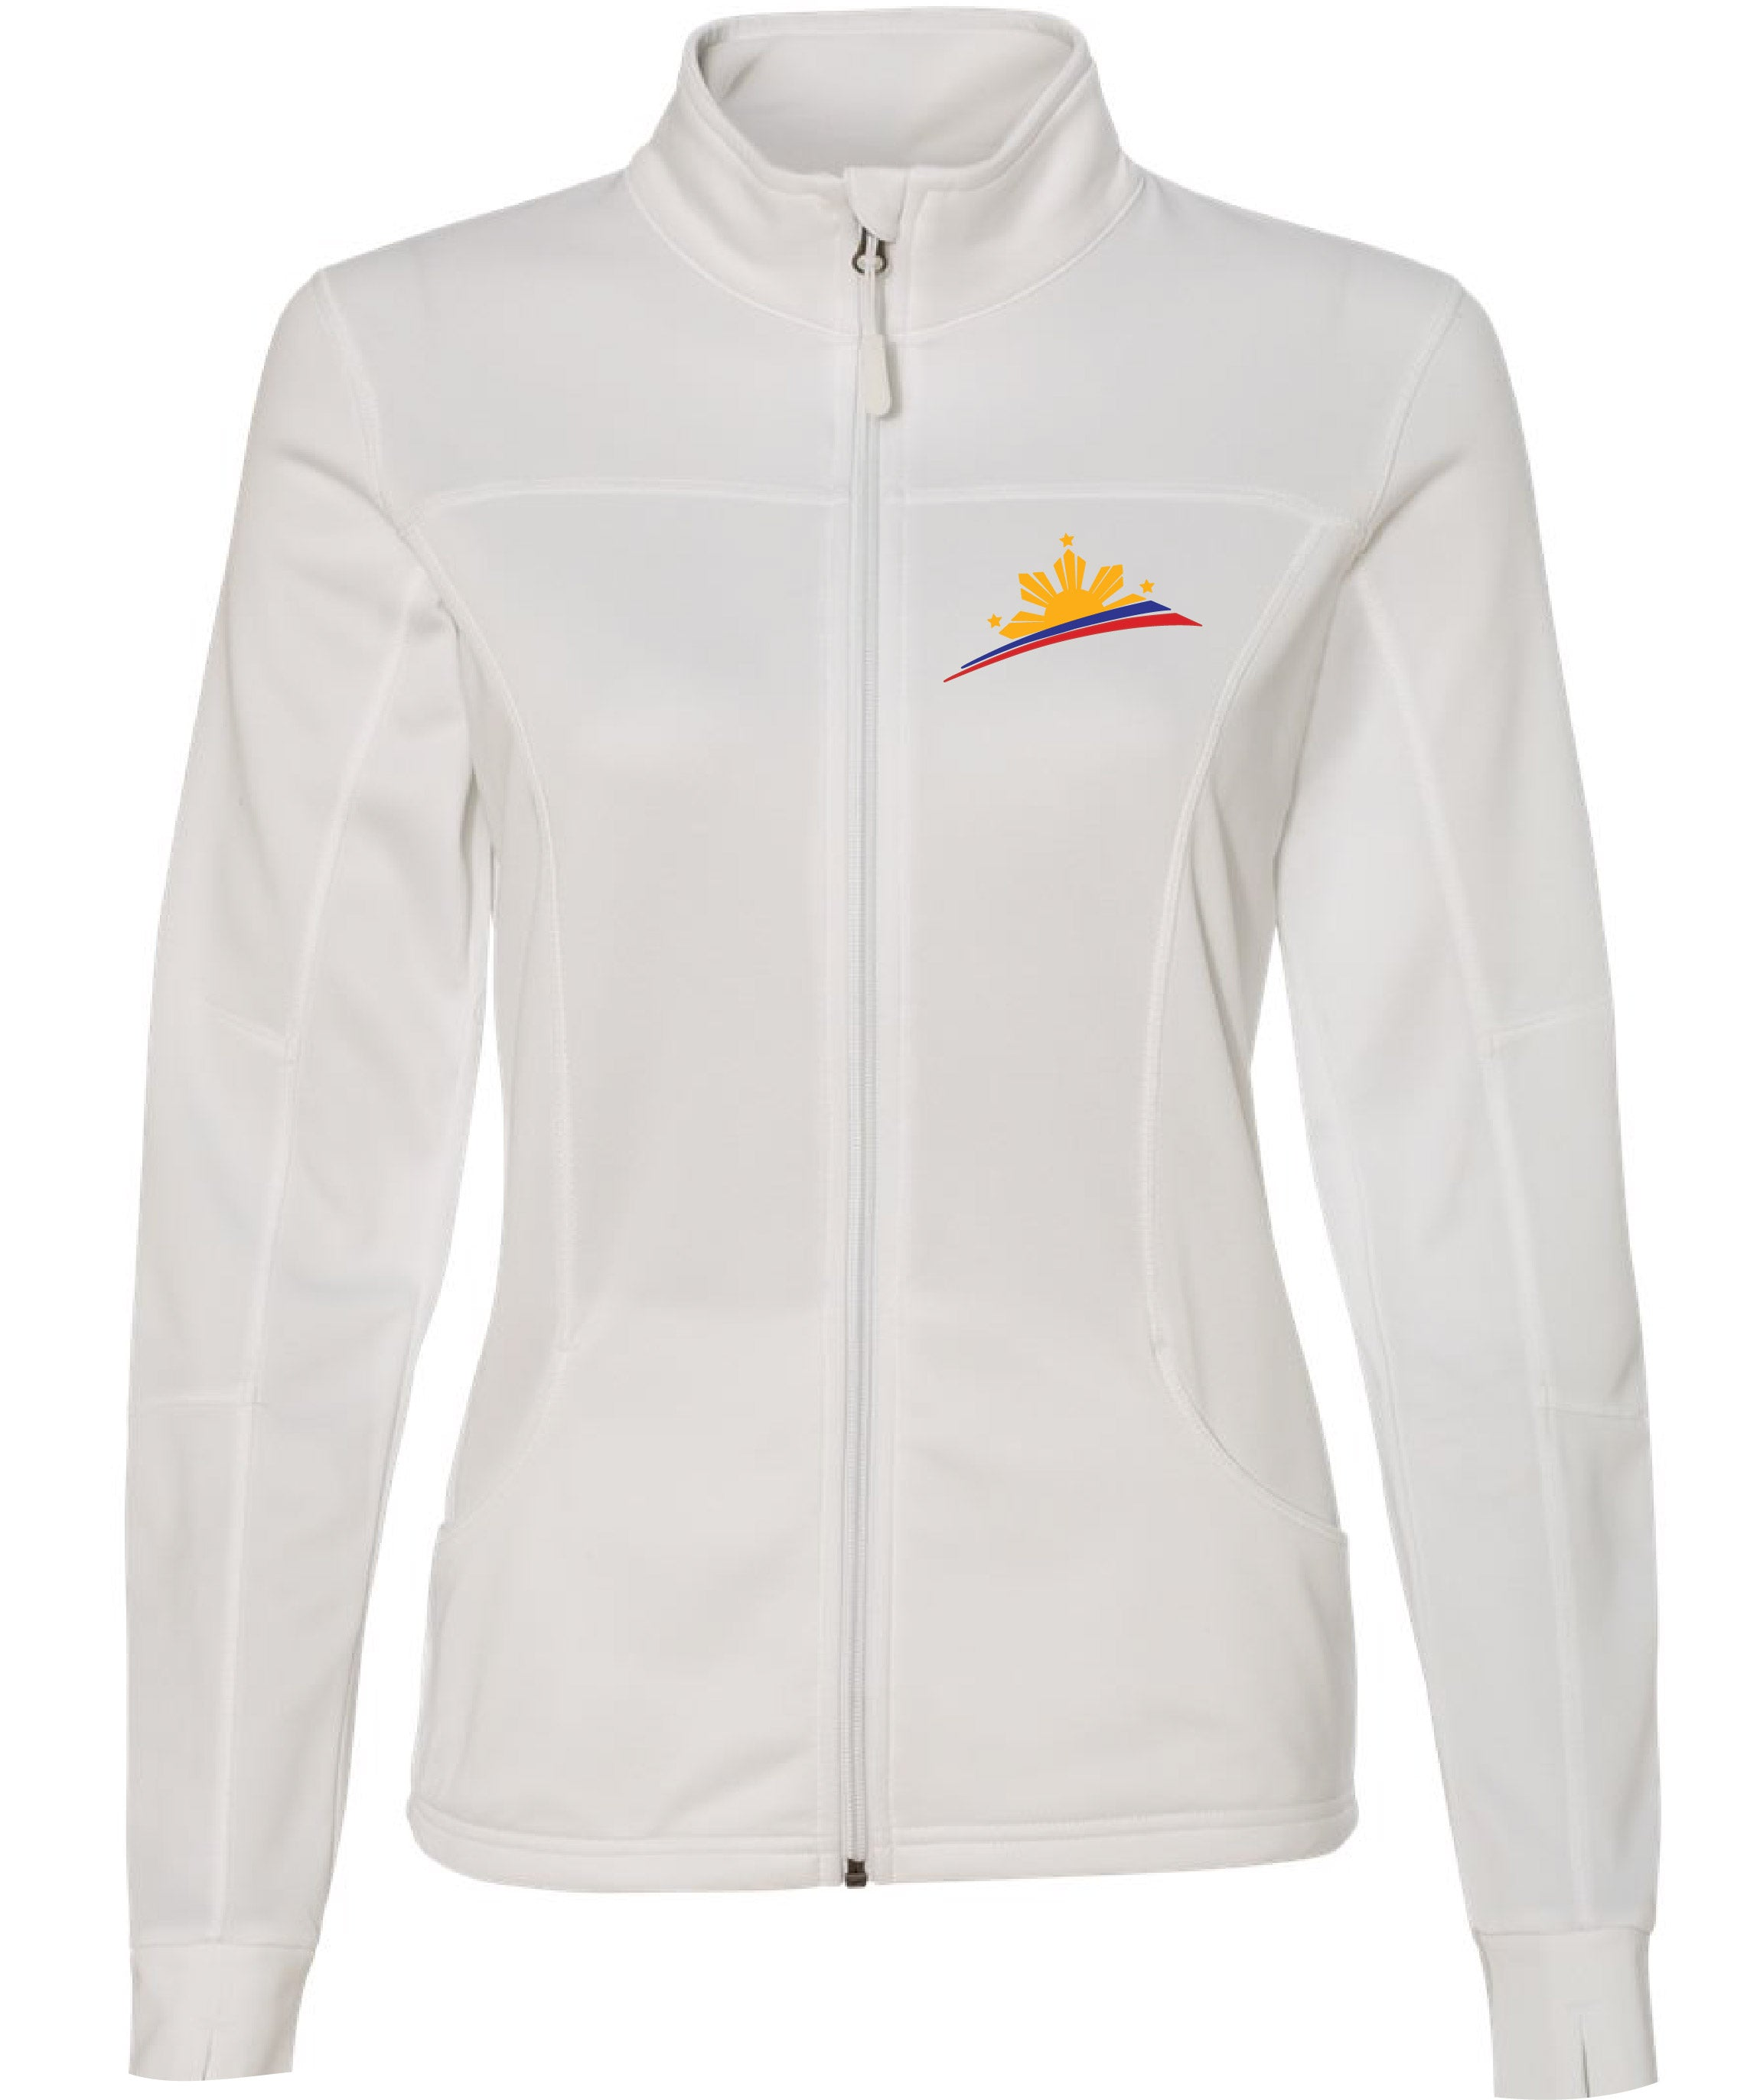 Filipino Track Jacket - Women